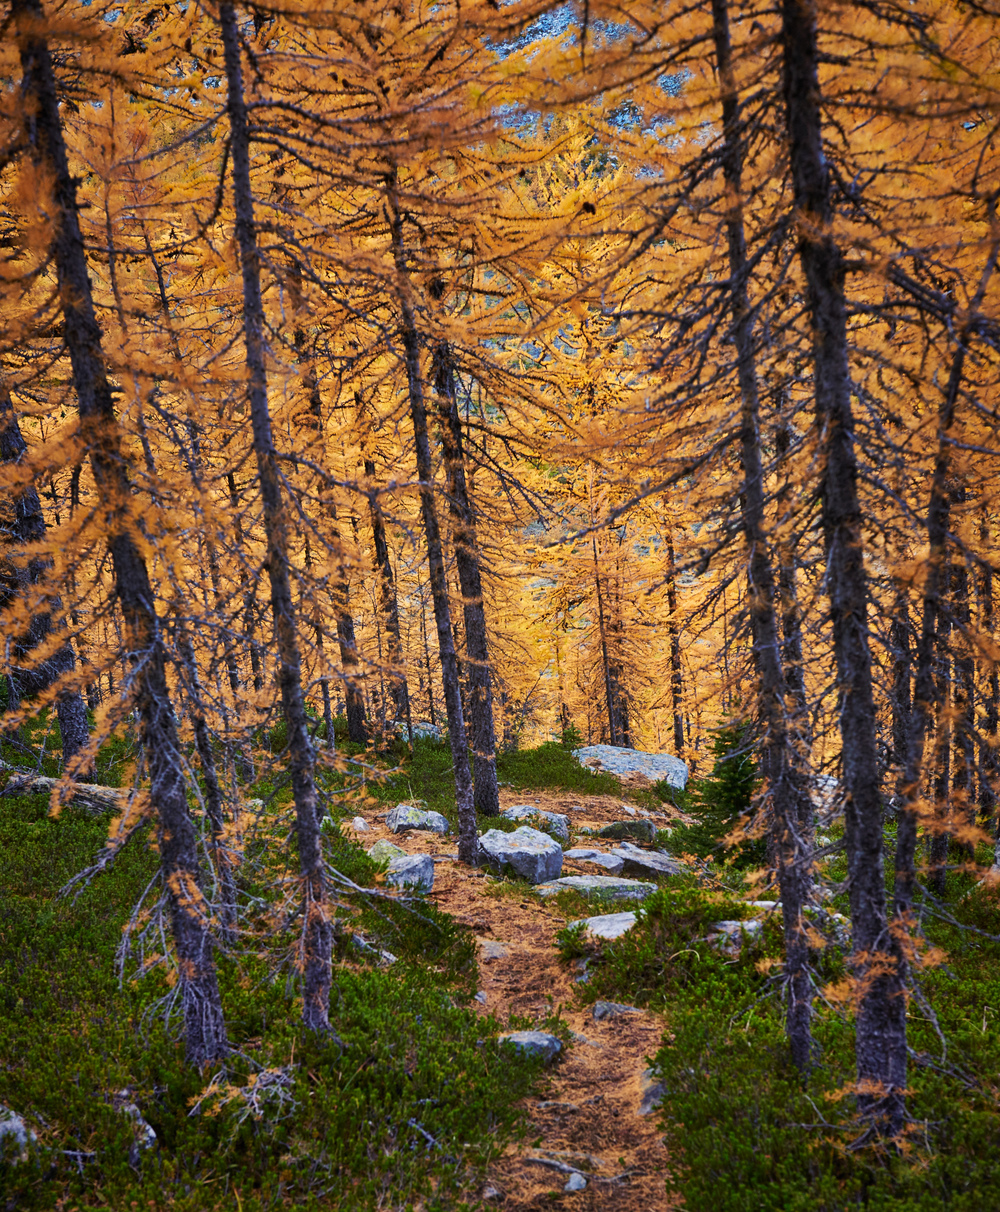 Larch season is magical in the Canadian Rockies and I made a point of getting out to shoot during this time. As long as I can remember, I have always wanted this particular shot.. I didn't know where specifically it would be, just that I wanted to capture the larches in full blaze winding through a forest. Of all the photographs I have taken, this one is in my top 5 ever!